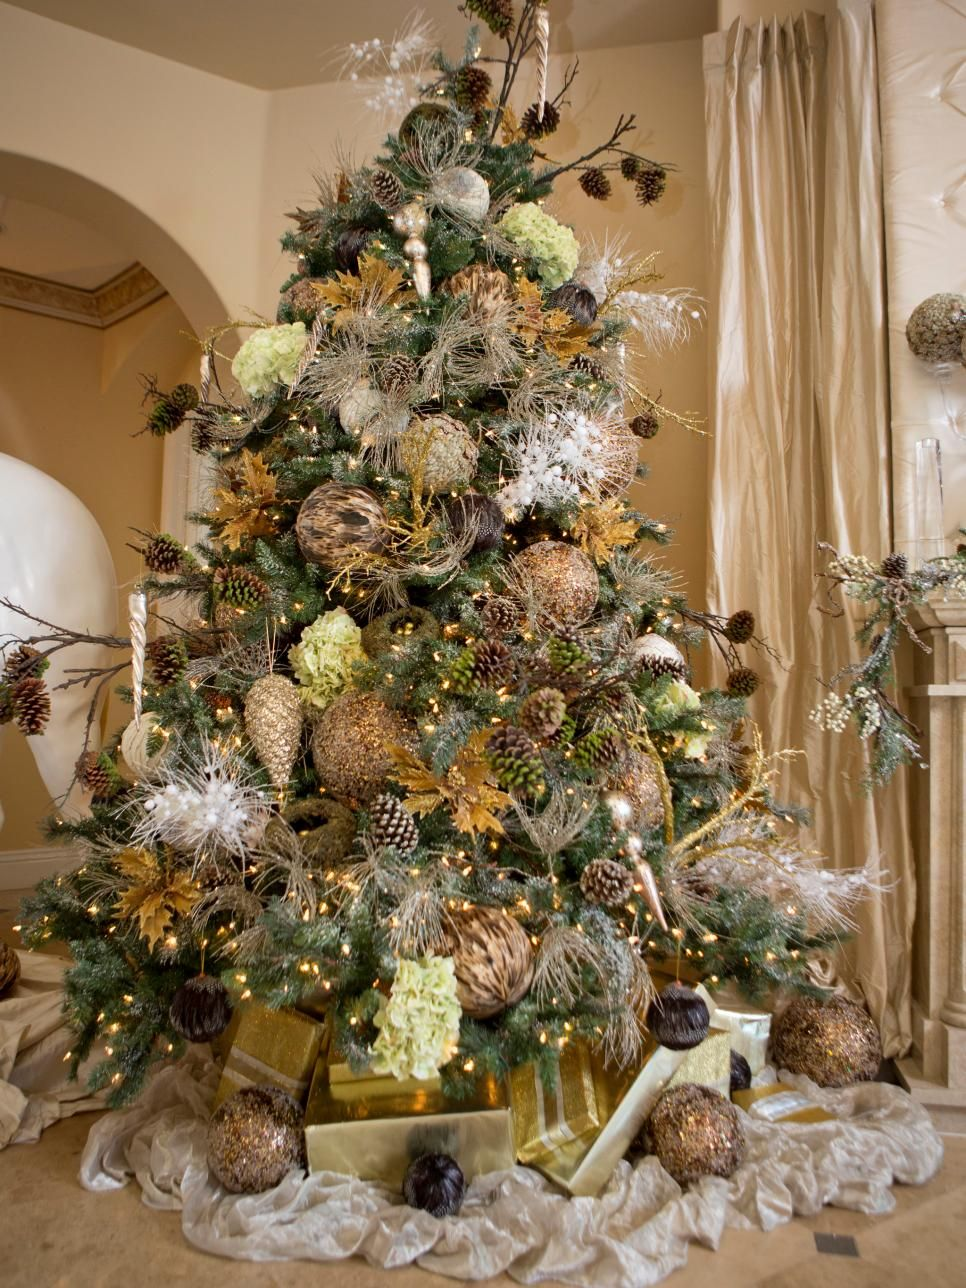 celebrity holiday homes - Celebrities Christmas Decorated Homes